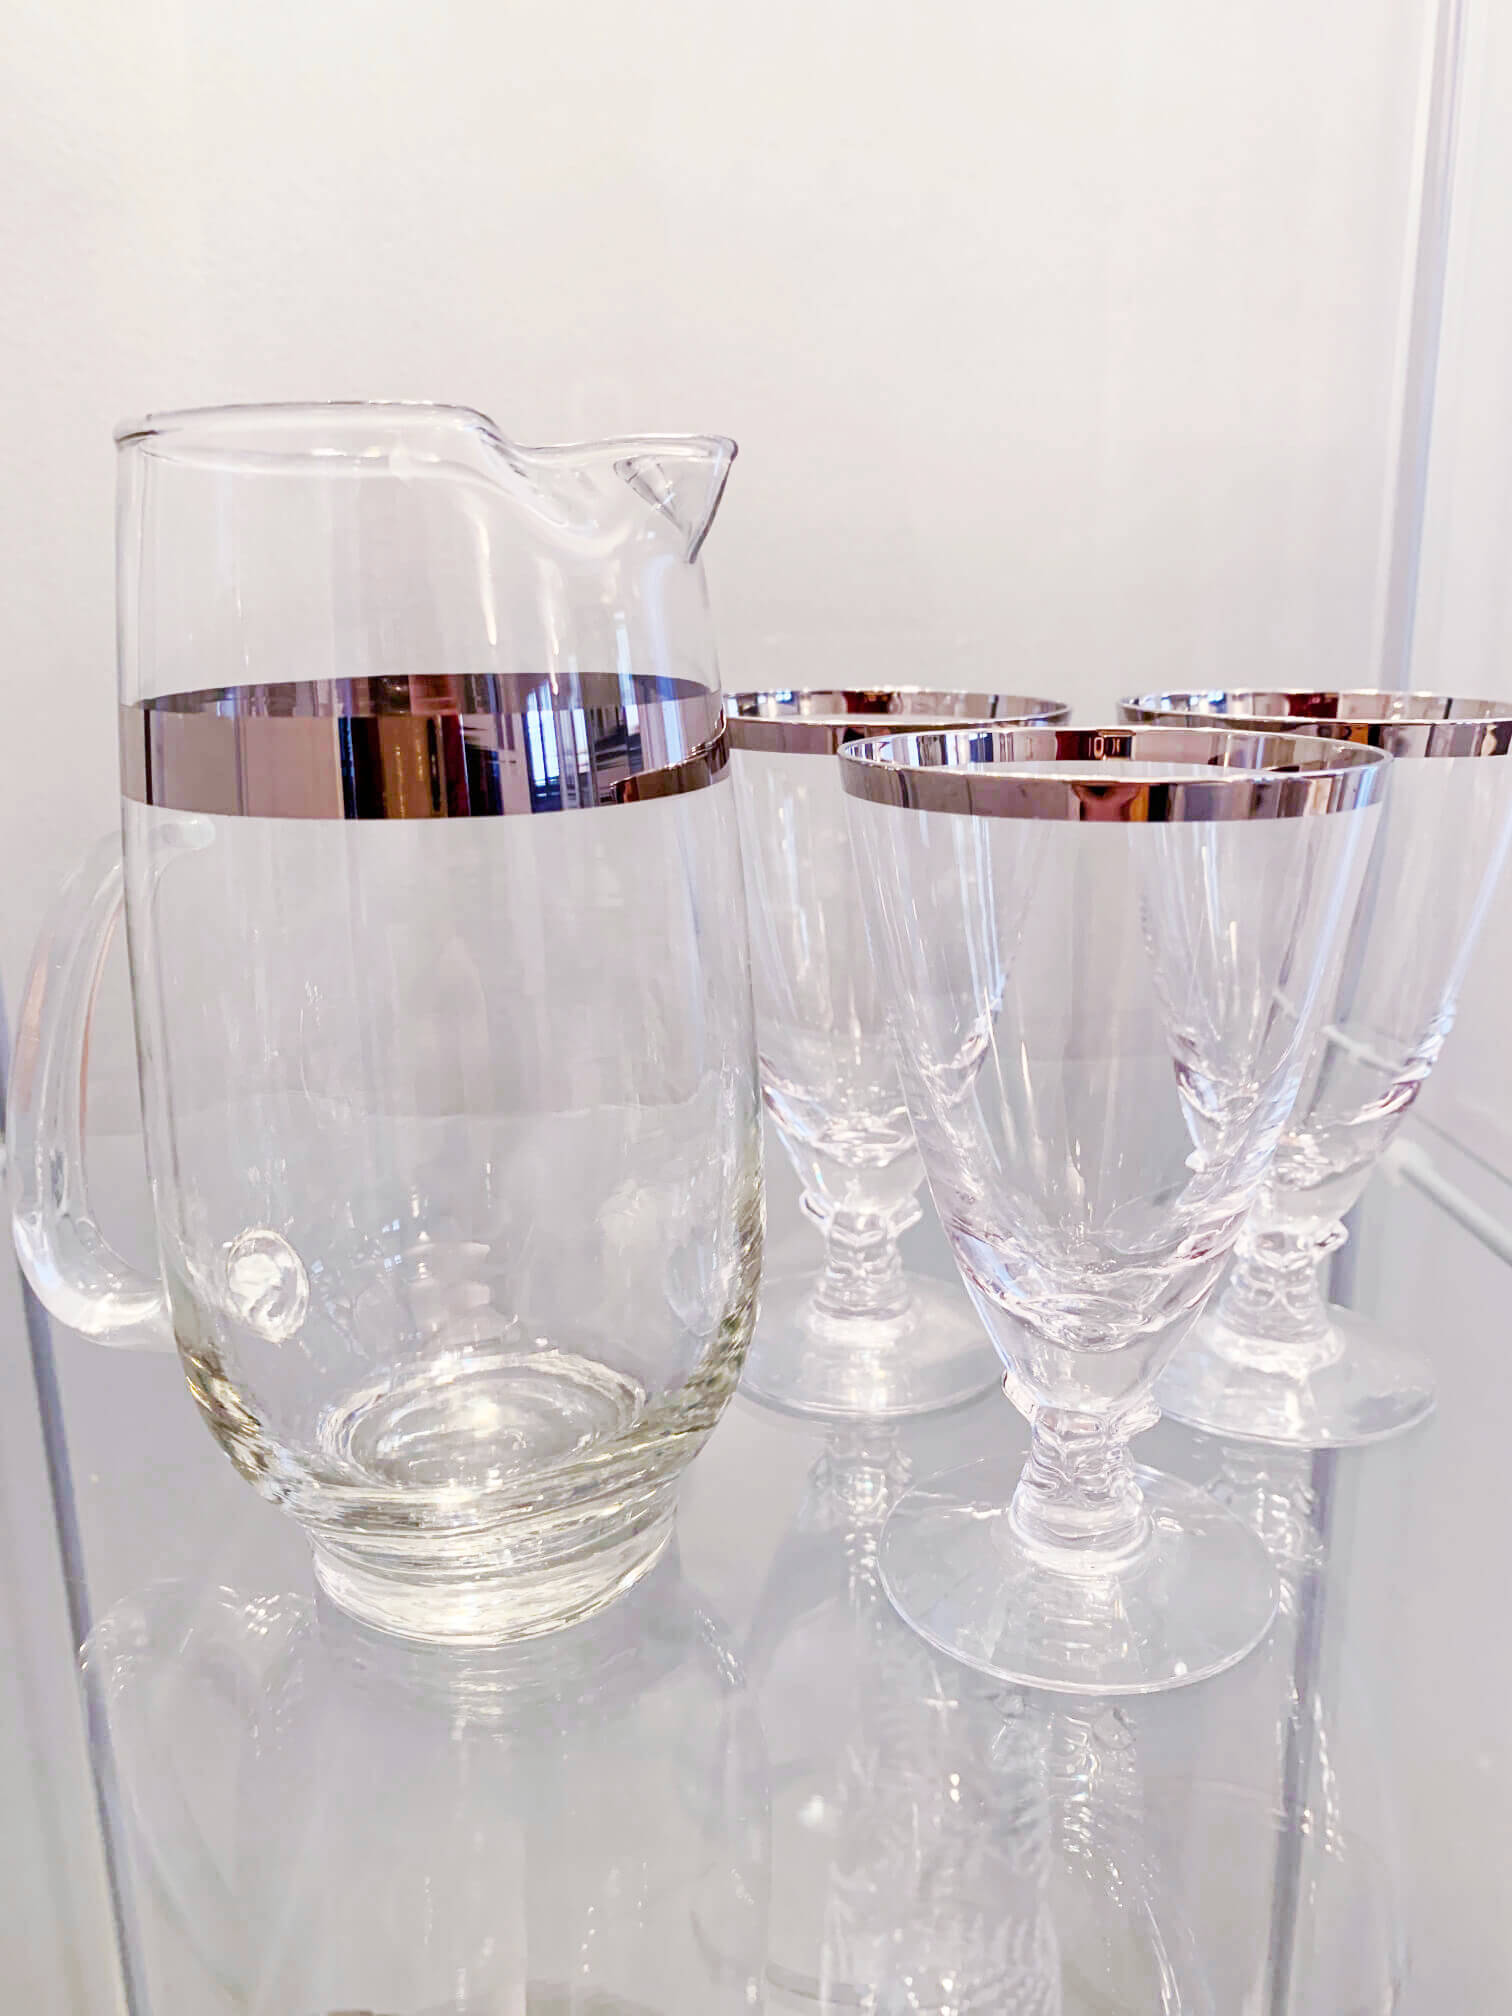 Silver rimmed cocktail glasses and pitcher.